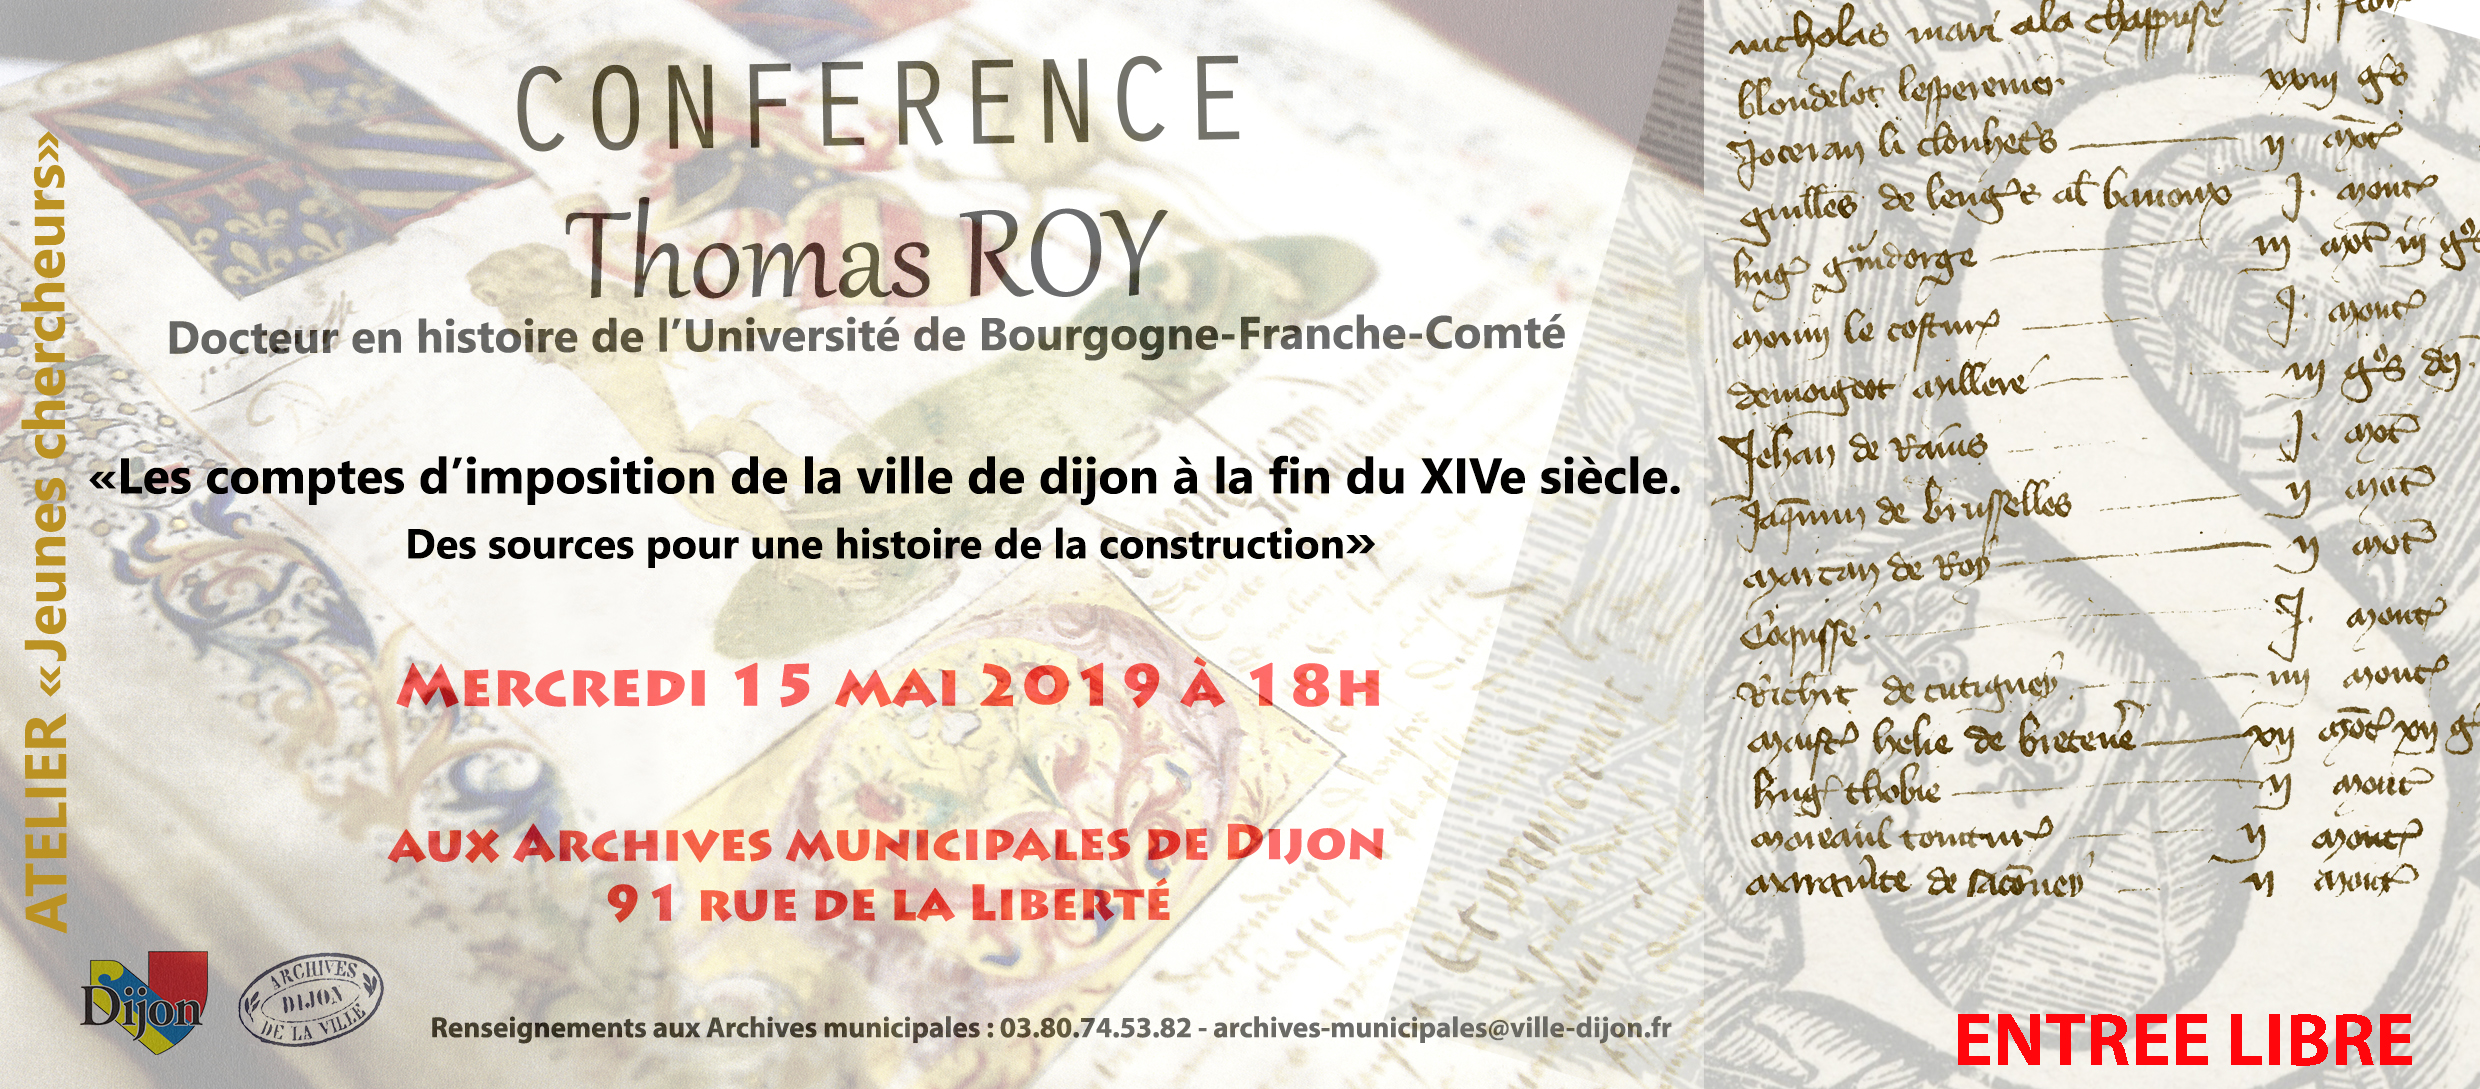 Flyer Conference Thomas Roy